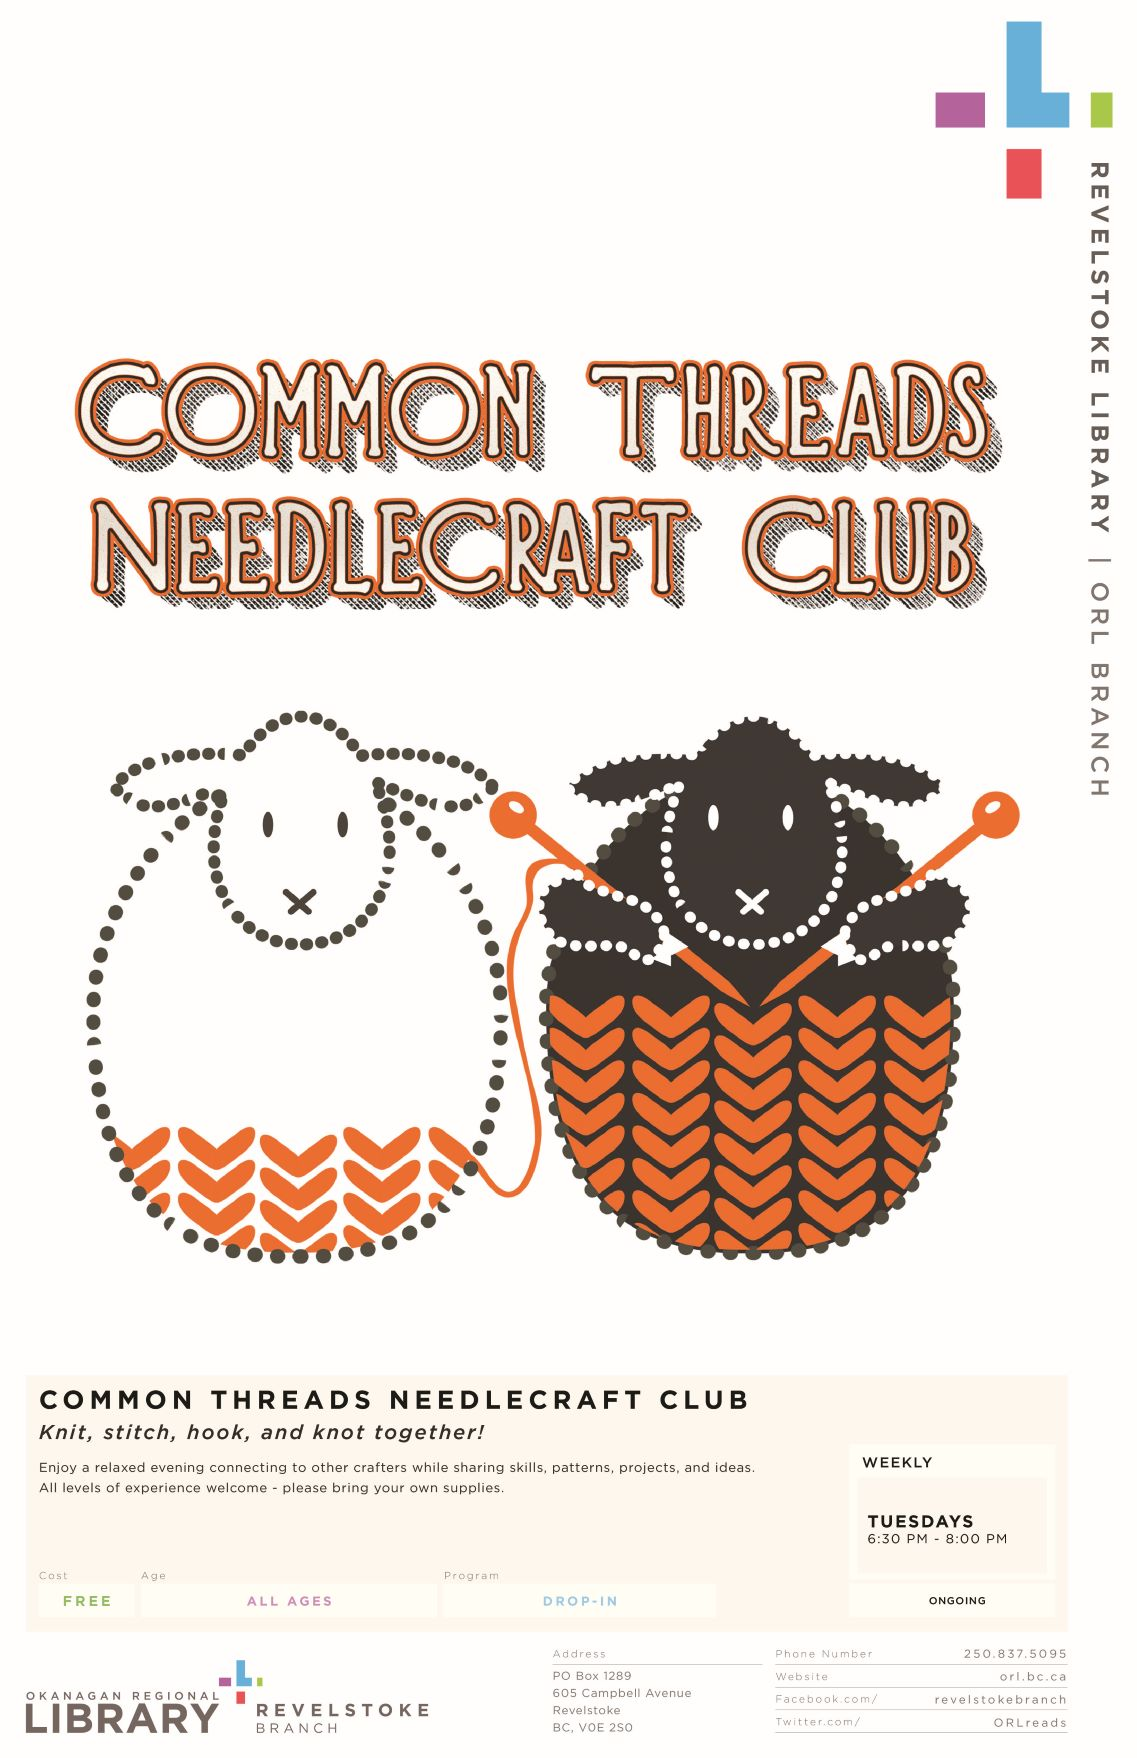 Common Threads Needlecraft Club @ Okanagan Regional Library Revelstoke Branch